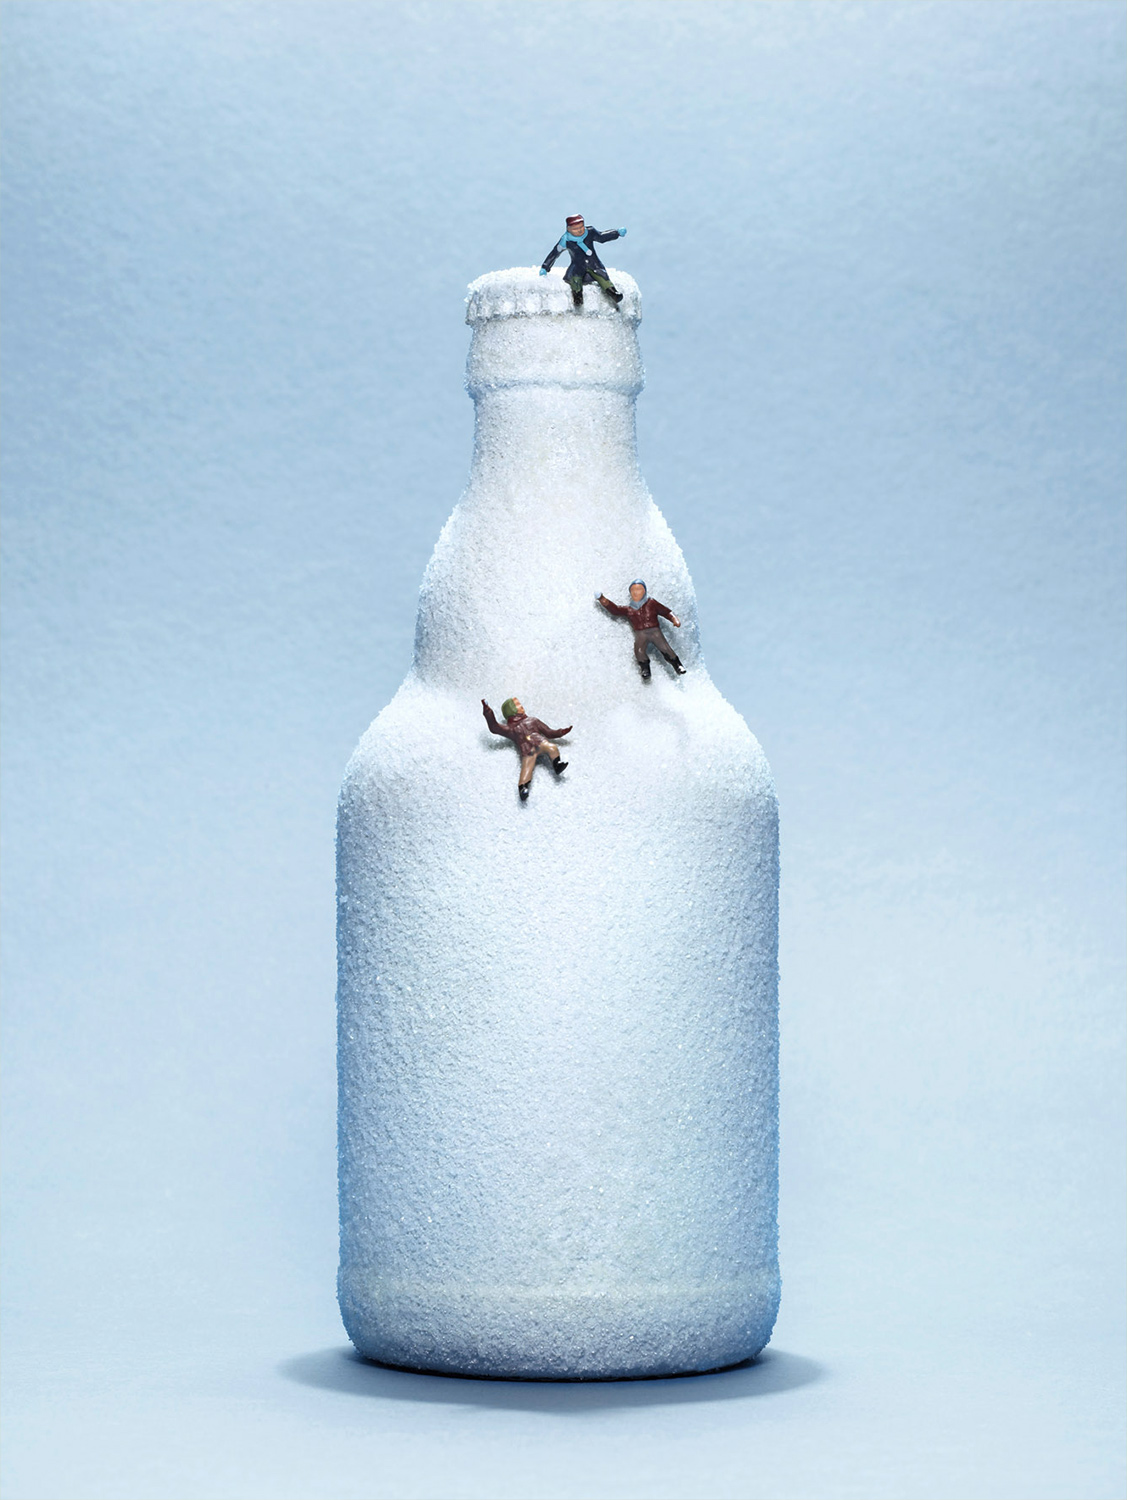 bernd_ebsen_still-life_the_bottle_snow